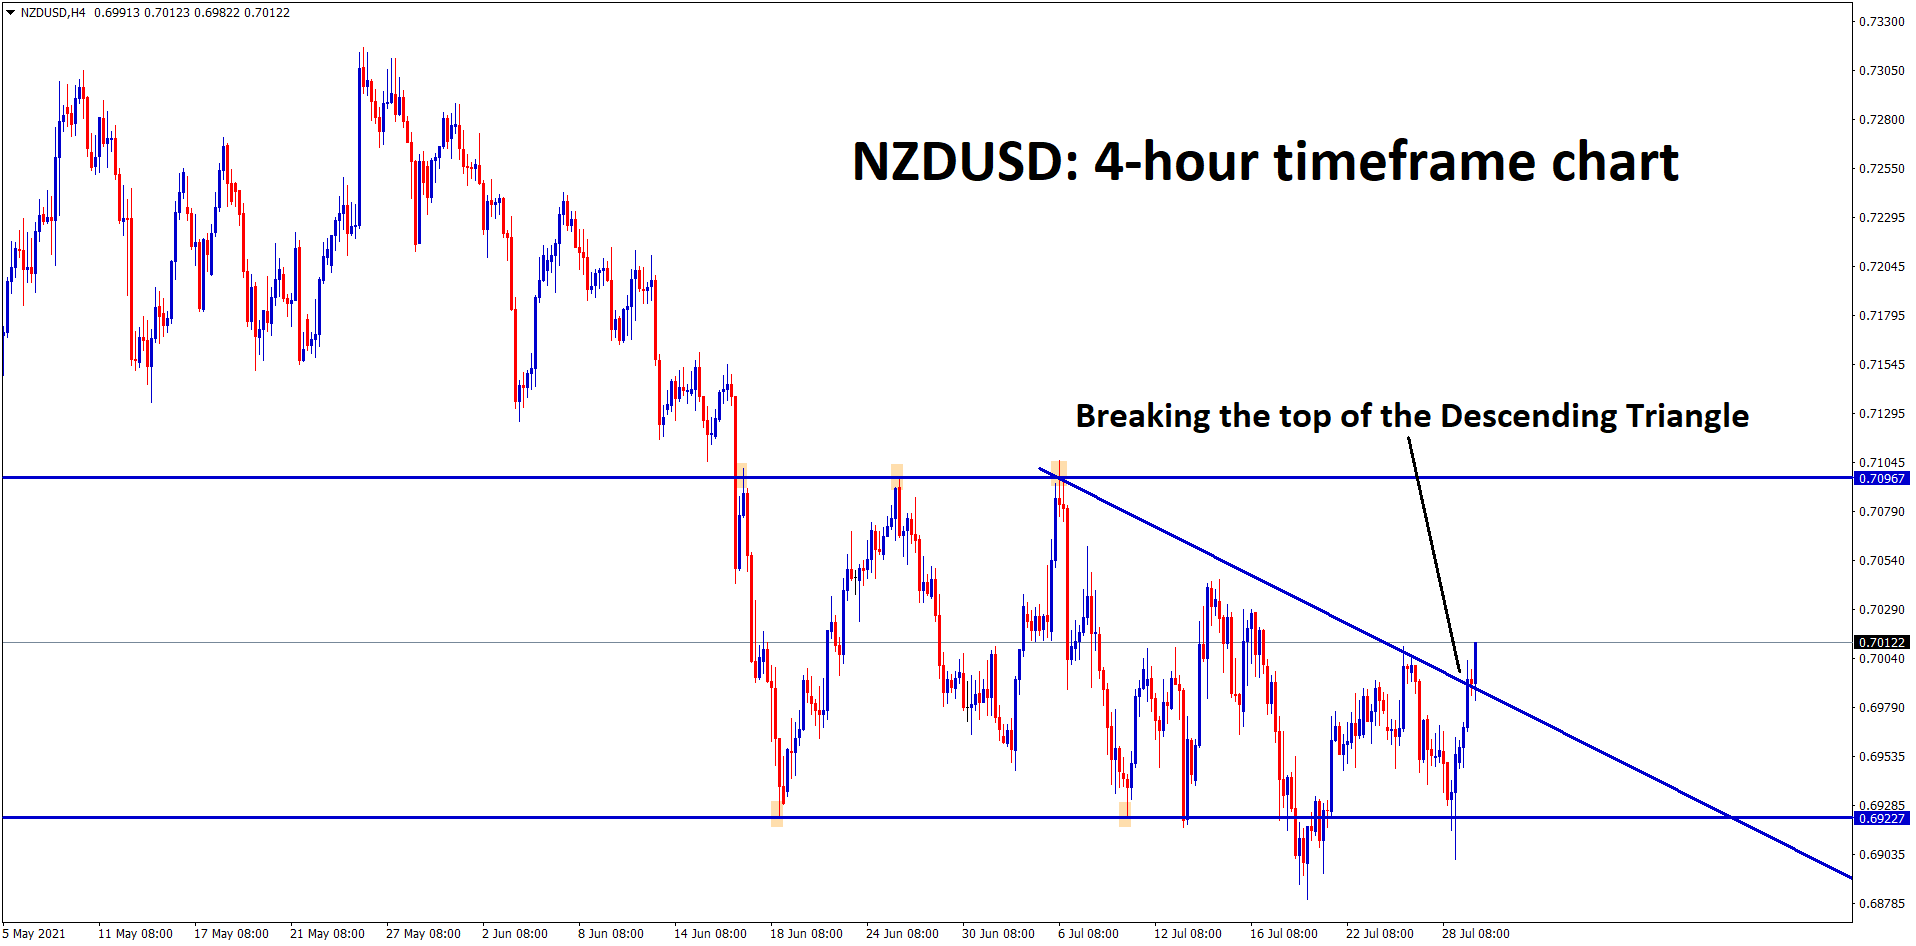 NZDUSD is breaking the top of the Descending Triangle pattern